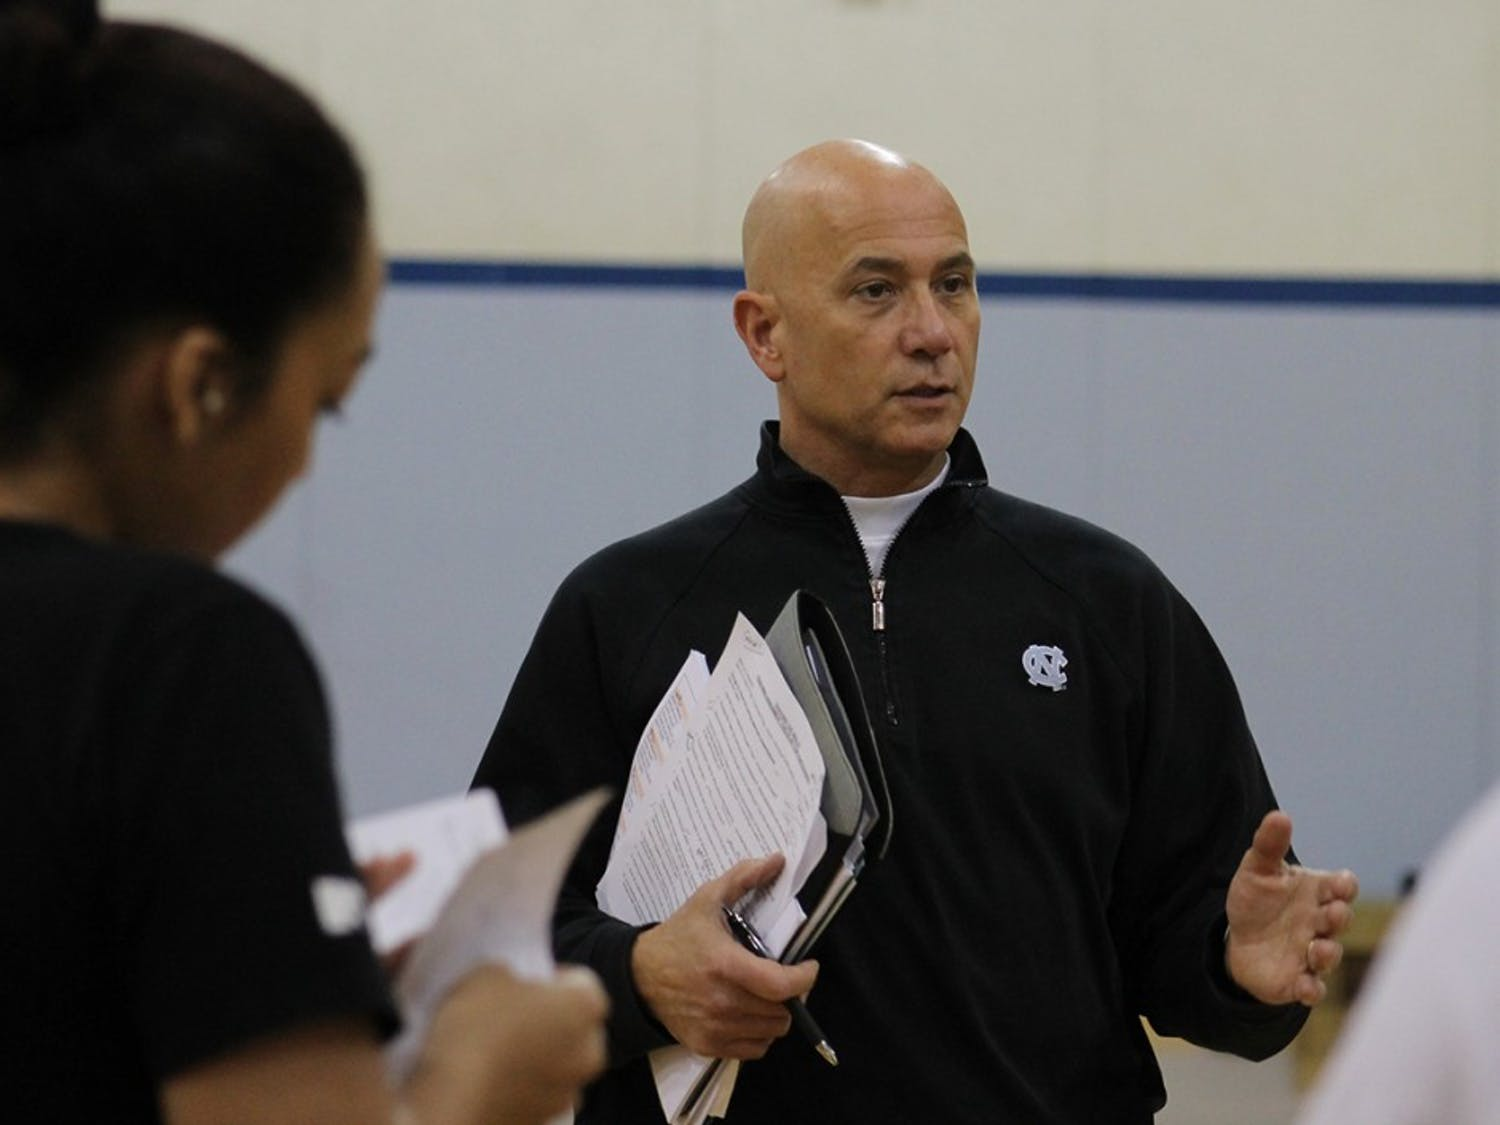 University of North Carolina varsity volleyball coach, Joe Sagula teaches a coaching class for EXSS students on Wednesday morning.